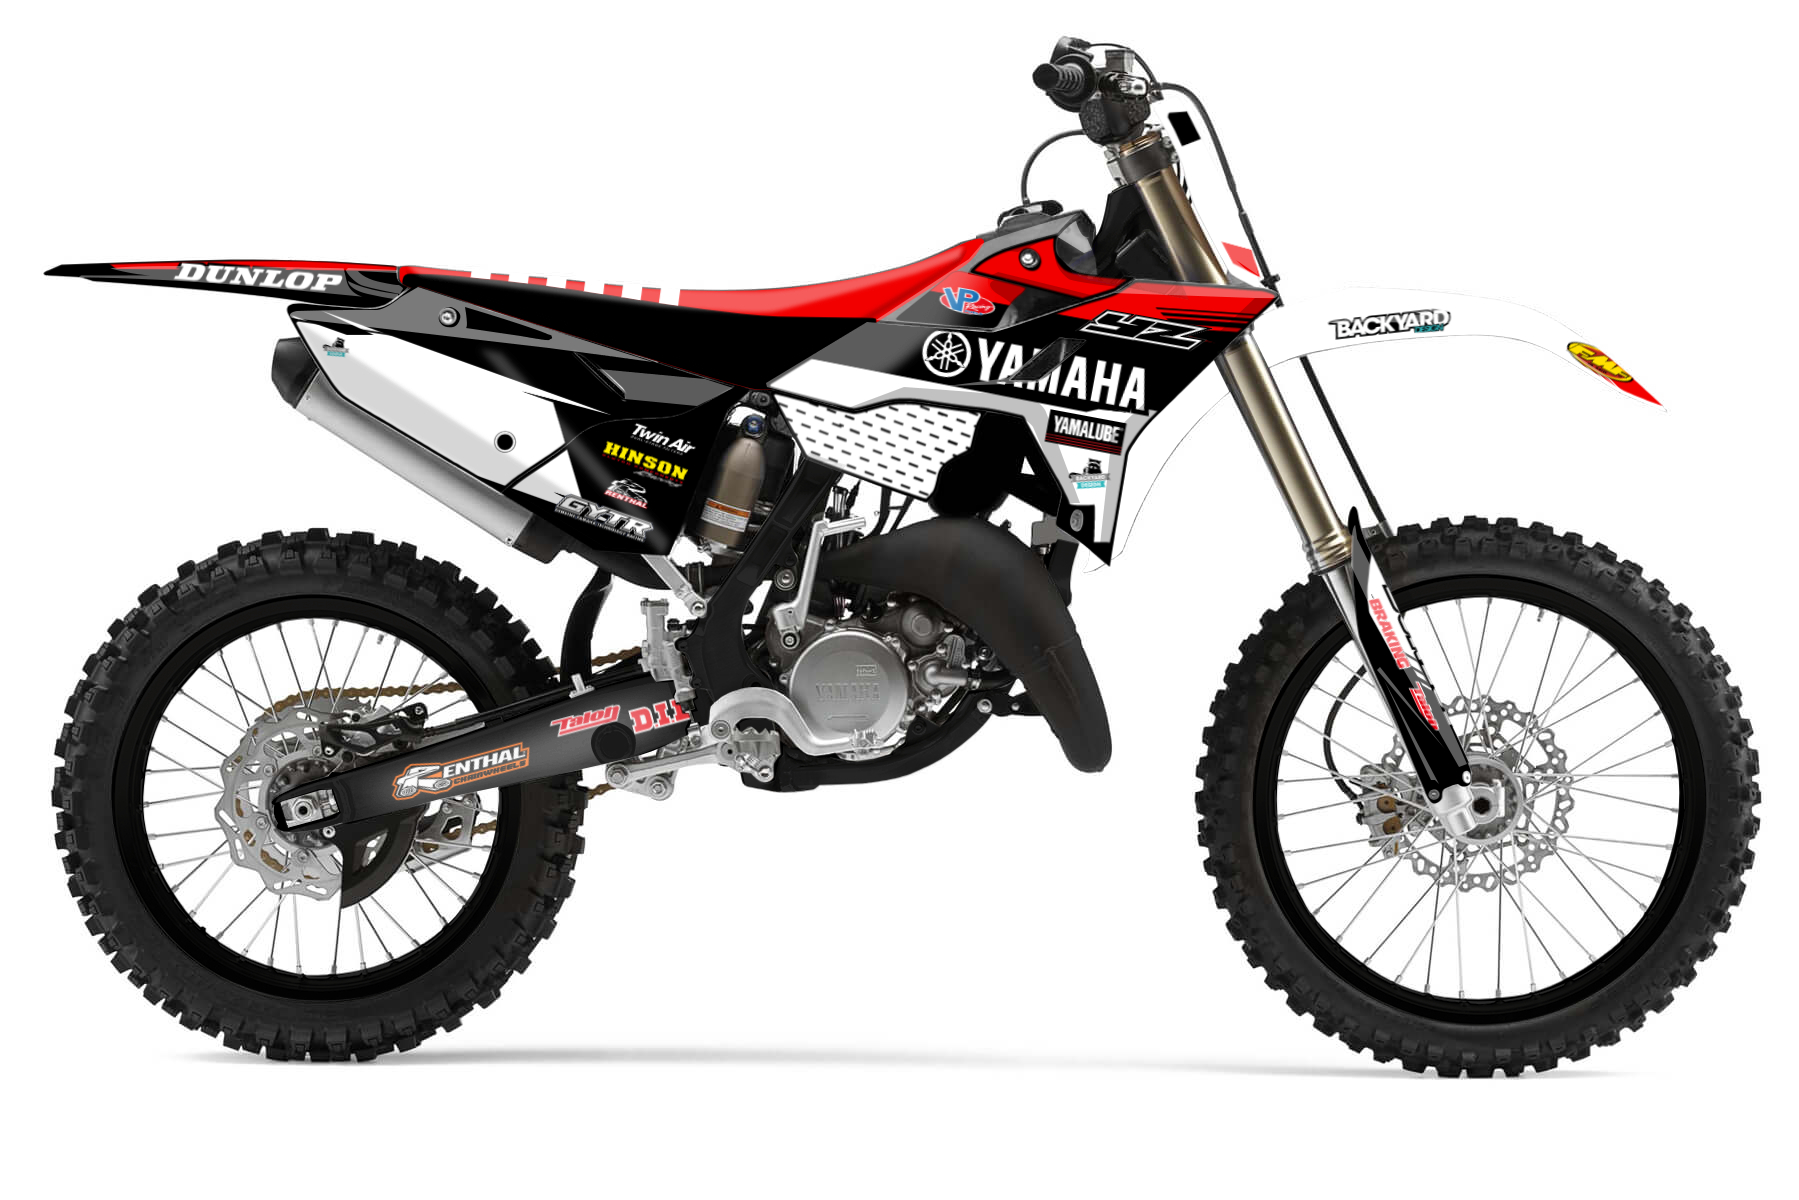 Yamaha YZ 250 – Racetech Revolution MX Graphic Kits  You do not want your Yamaha YZ 250 to look like everyone else's? The Racetech Revolution kit upgrades your bike and gives it an even sharper and more aggressive look.